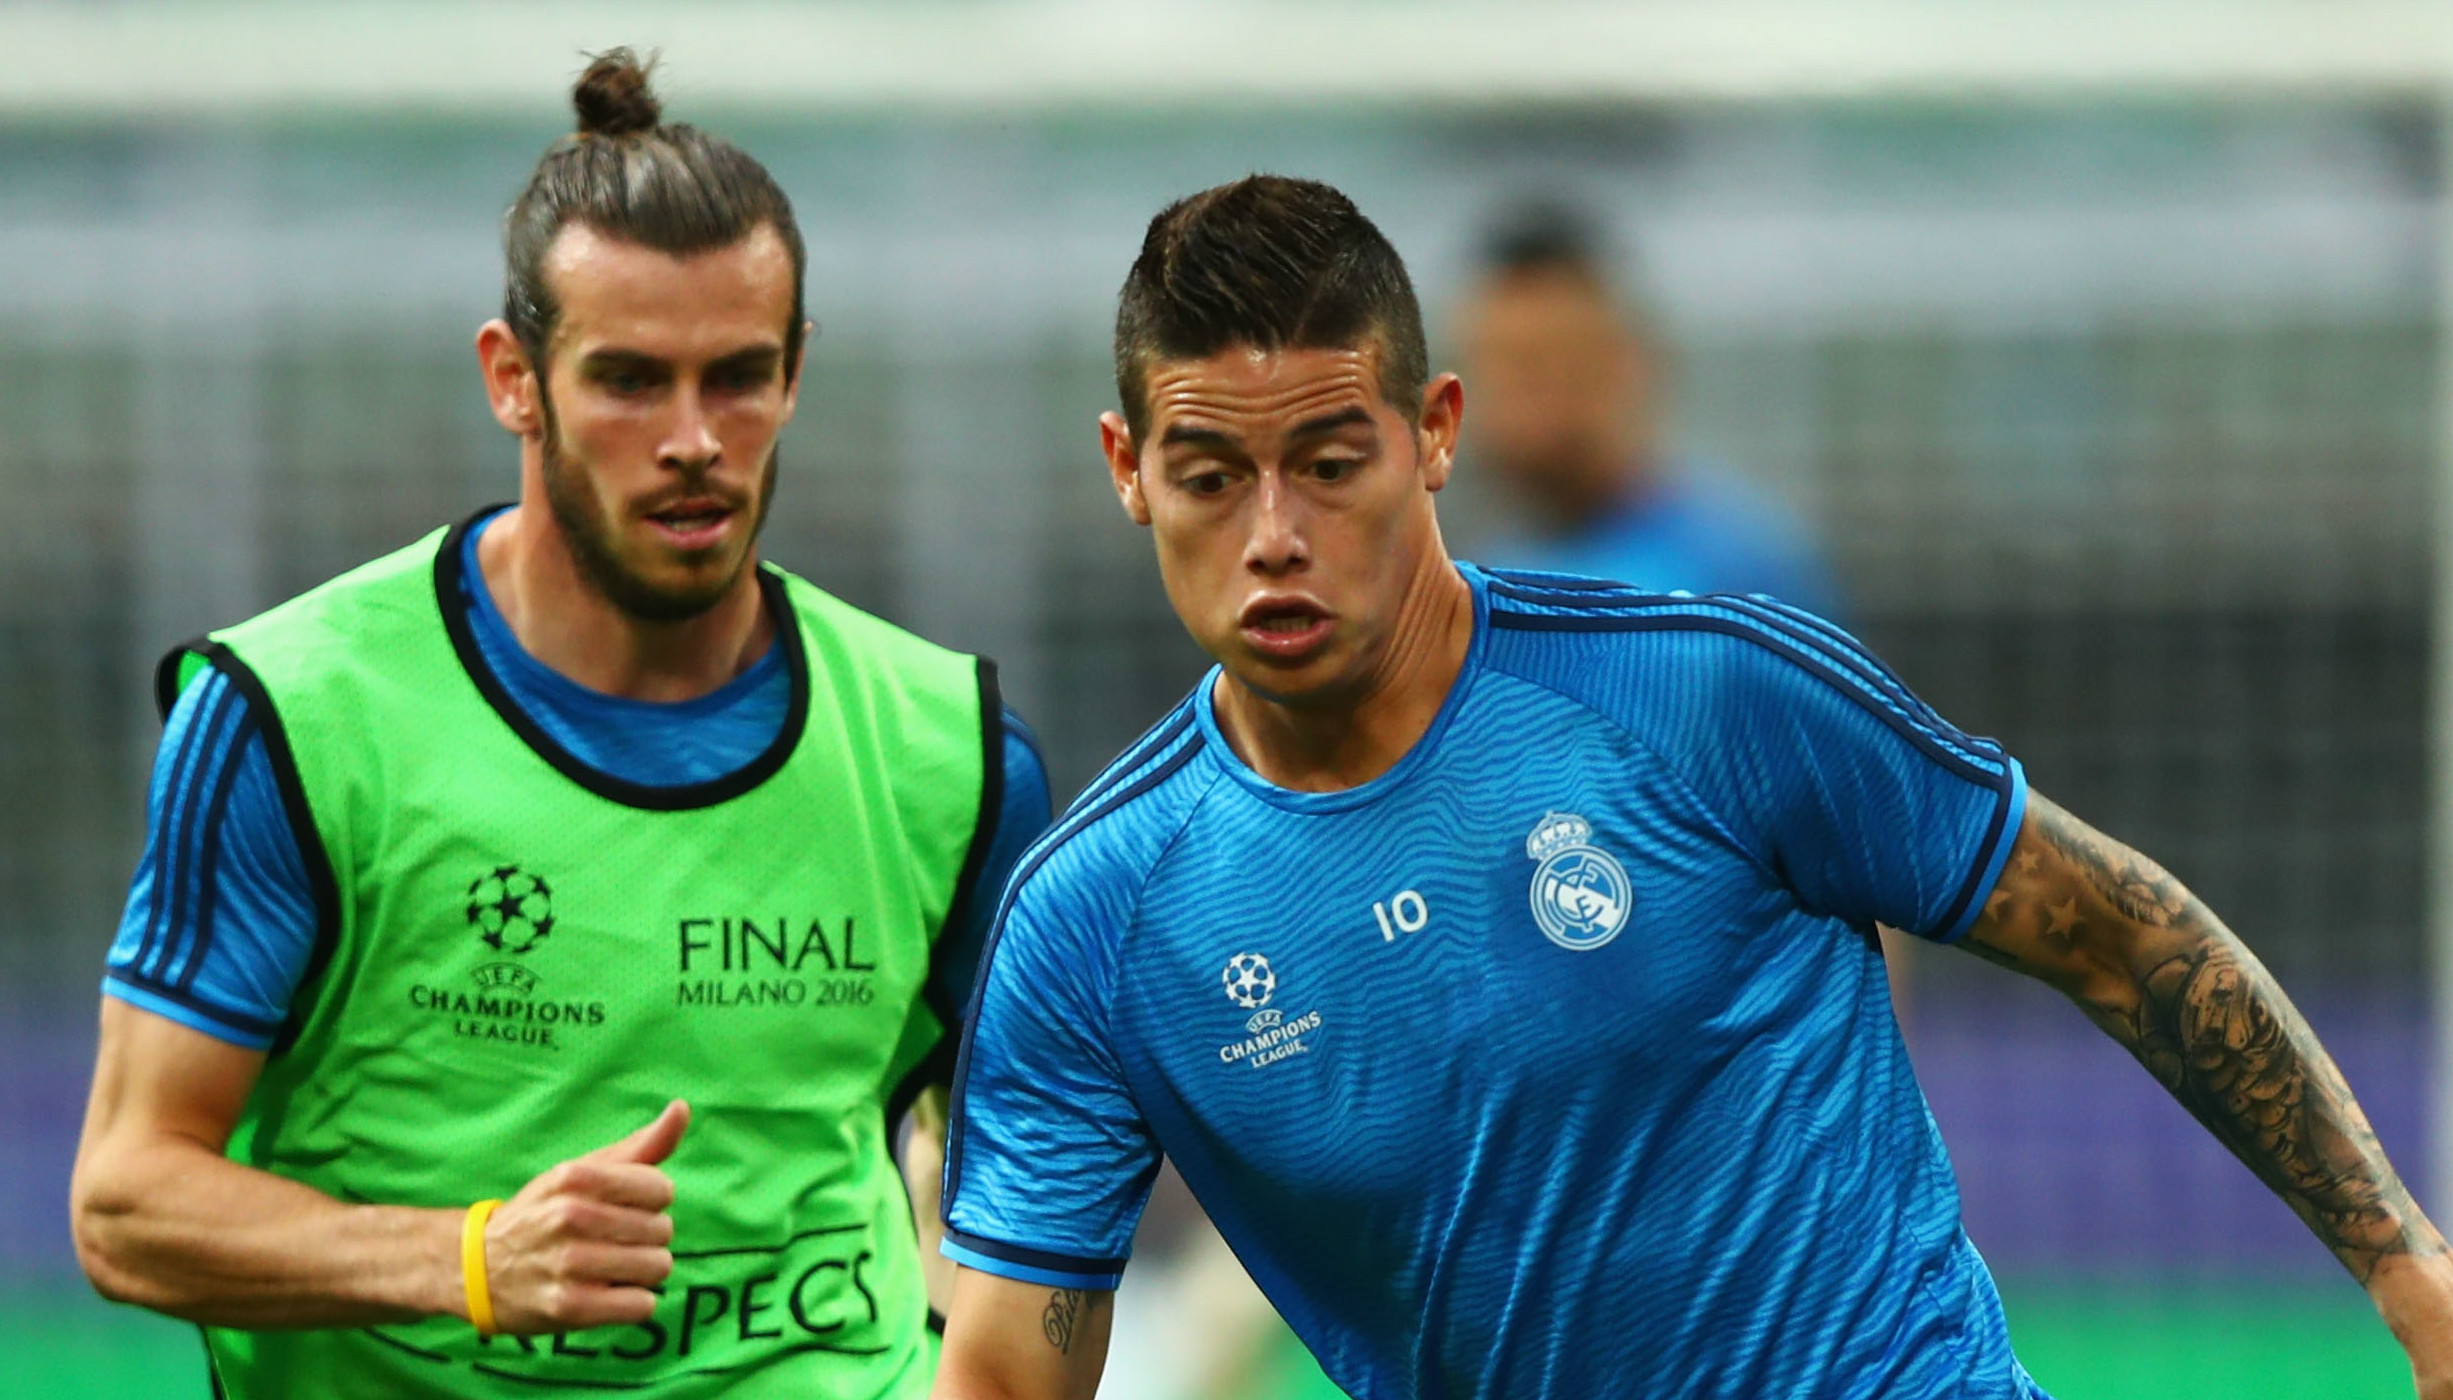 Real Madrid duo Bale and James not yet fit enough to return to action, says Zidane